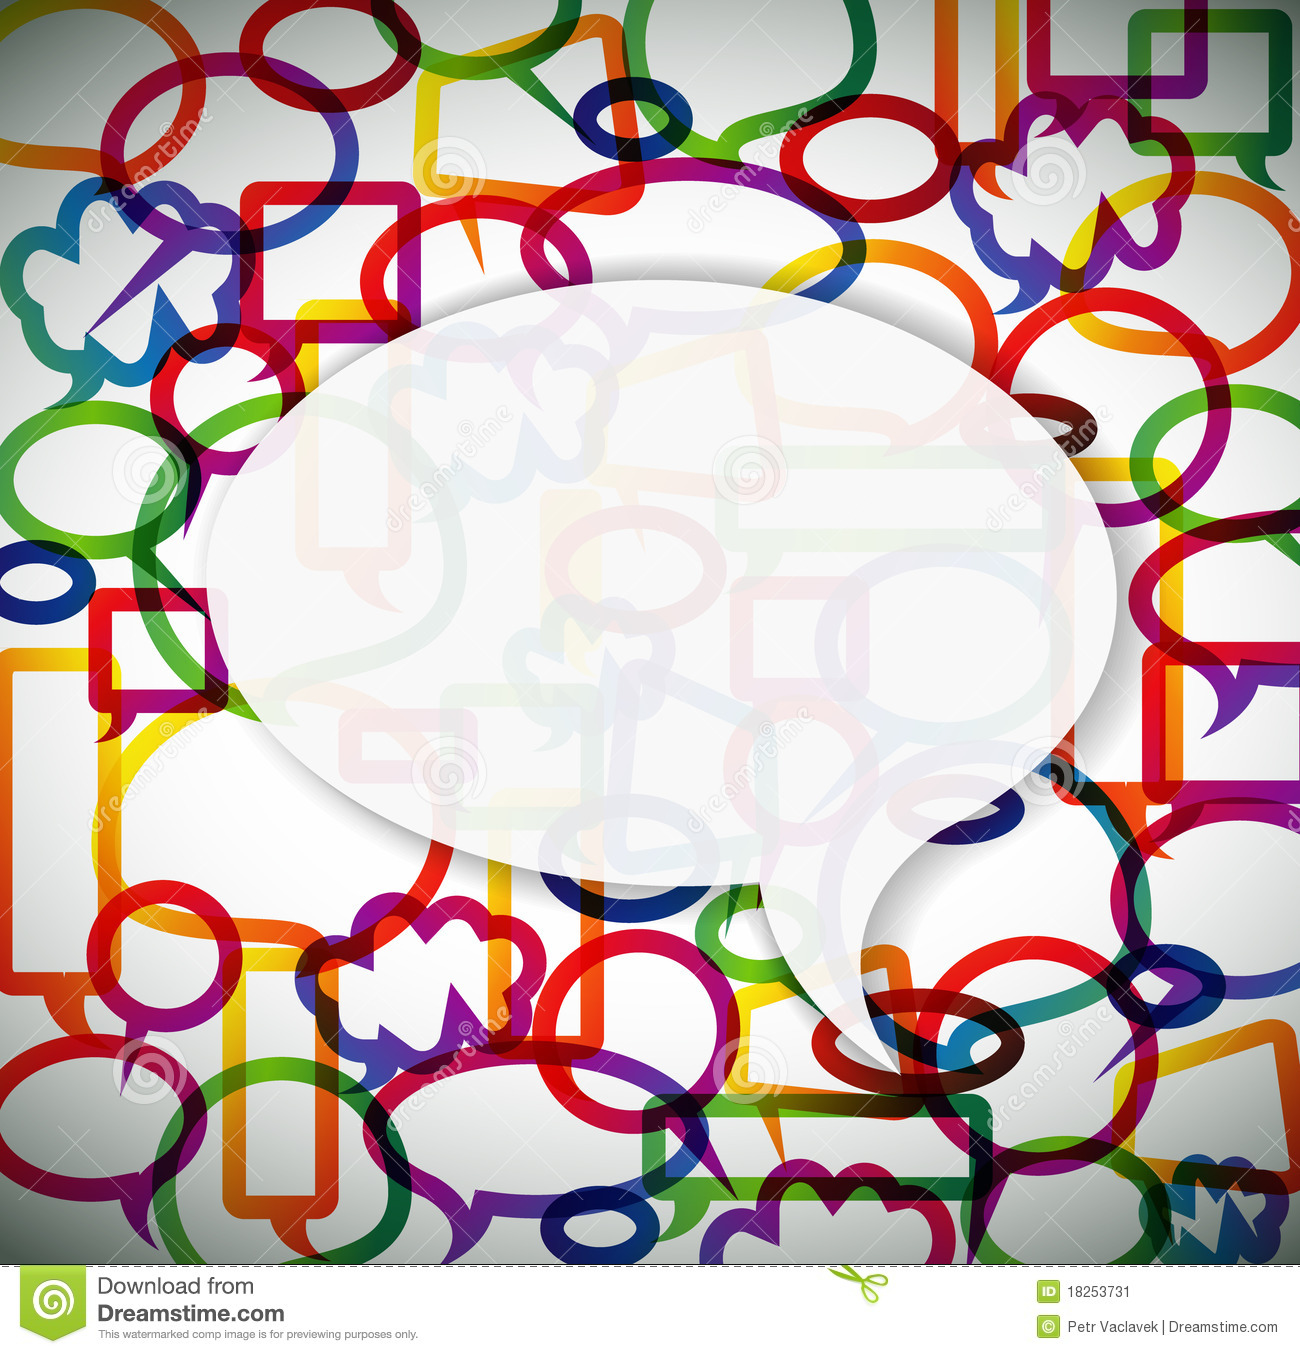 informative speech on dreams 9what is an informative  9how would an informative speech be organized 9where can i get information informative presentations informative presentations.